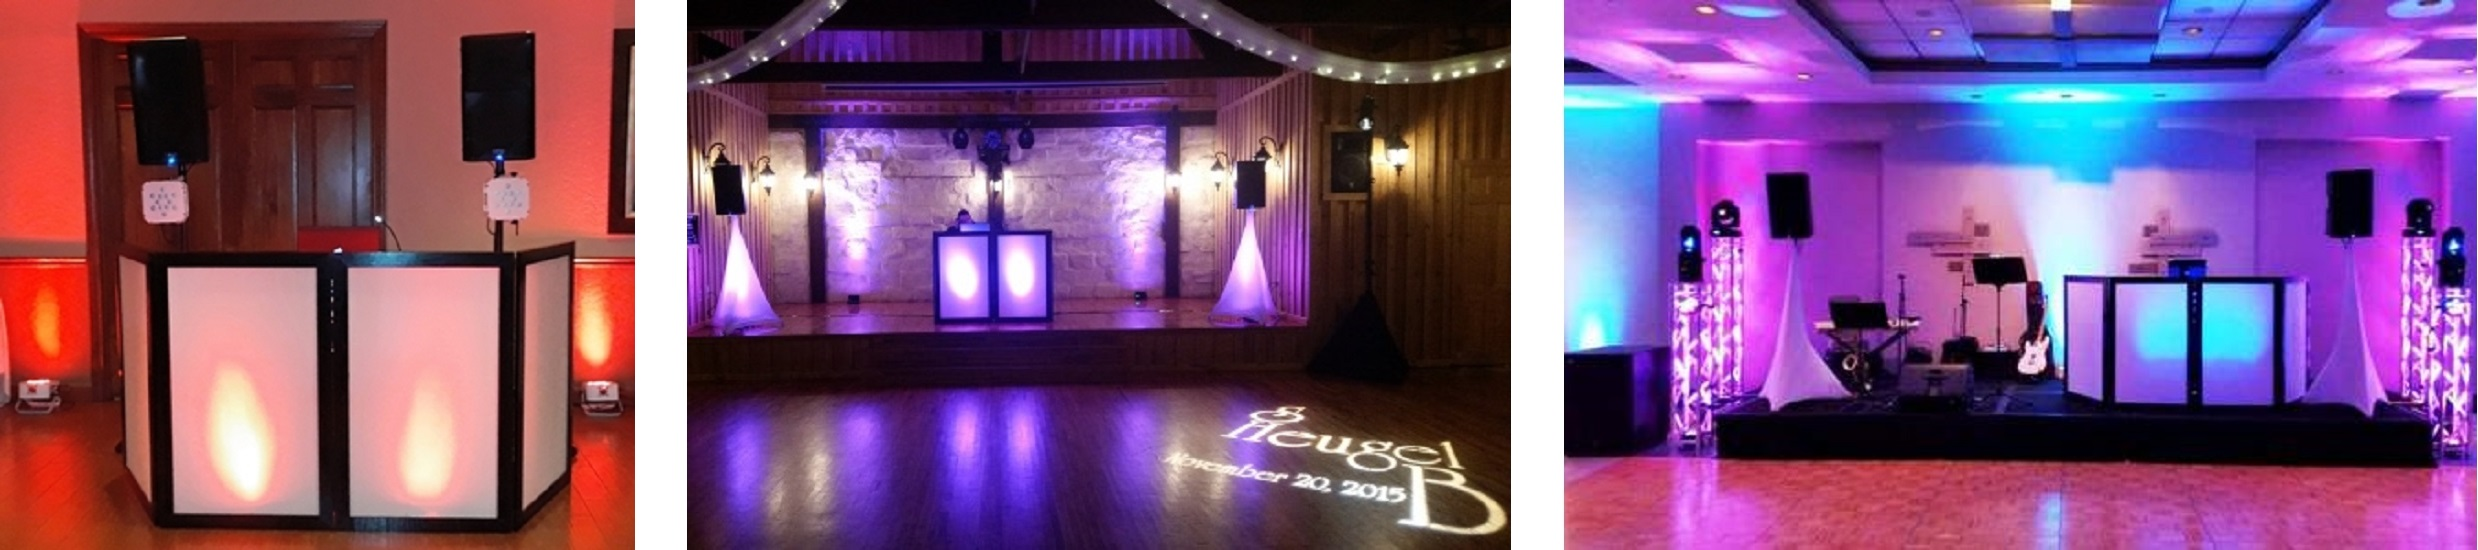 Houston Wedding DJ, DJs in Houston, Quinceañera DJ, Houston DJ, Up Lighting, Custom Gobo Monogram, Club Lighting, Stage Lighting, DJ Facade, Club Lighting, Lighting Truss, Awesome Music Entertainment, Awesome Event Pros, AME DJs, Sonido DJ Sammy de Houston